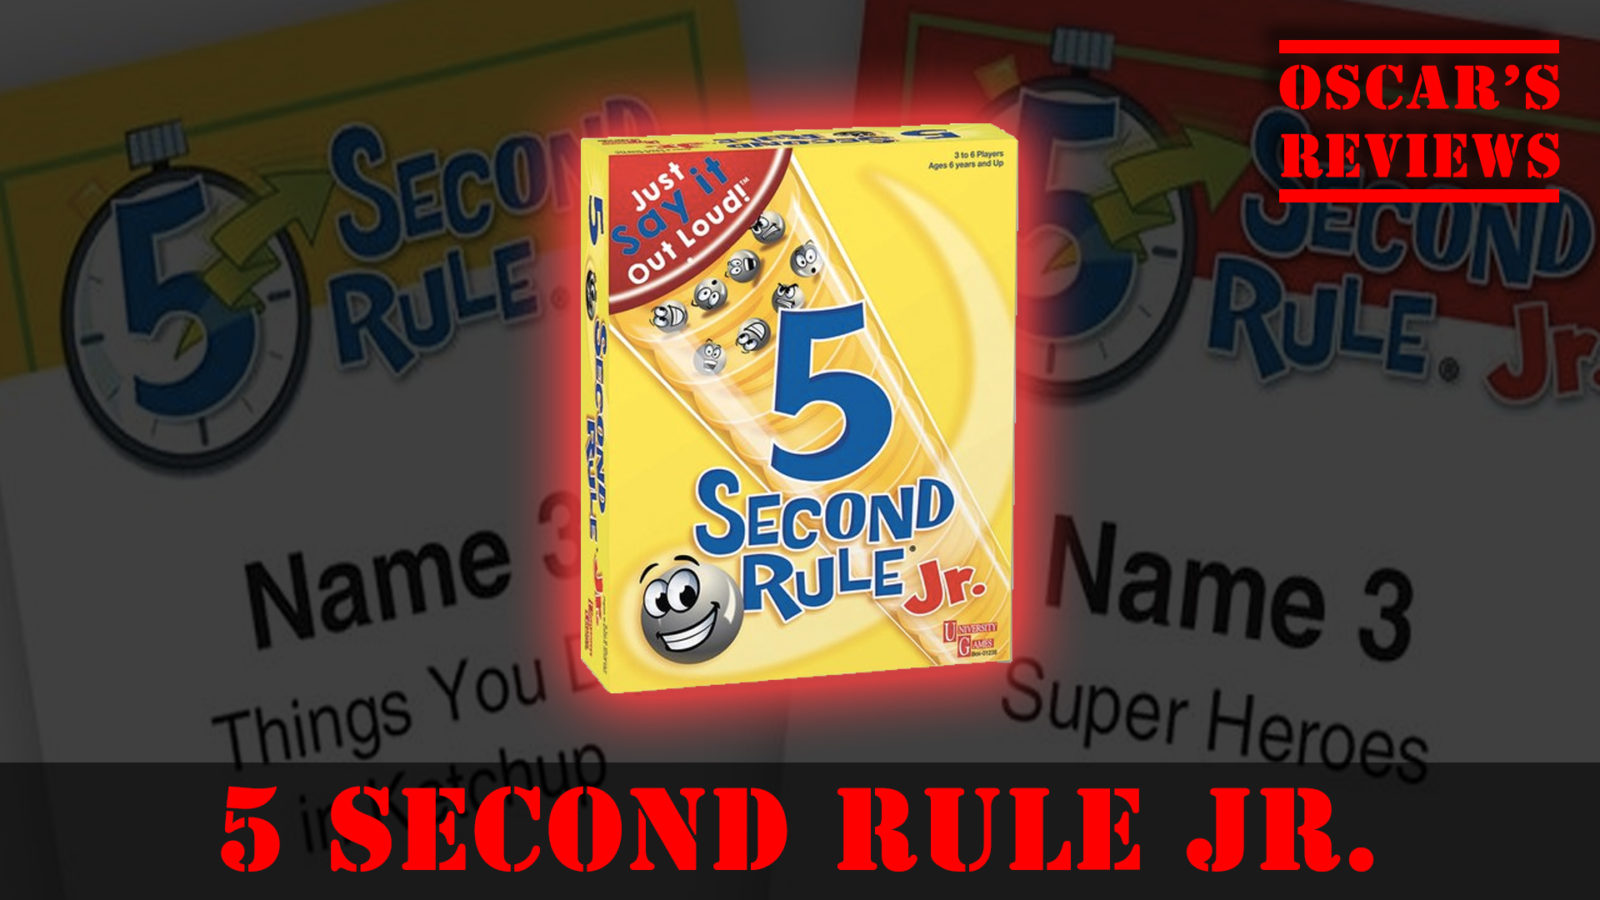 Name 3 Things You Want for Christmas. Fun with 5 Second Rule Jr. from University Games